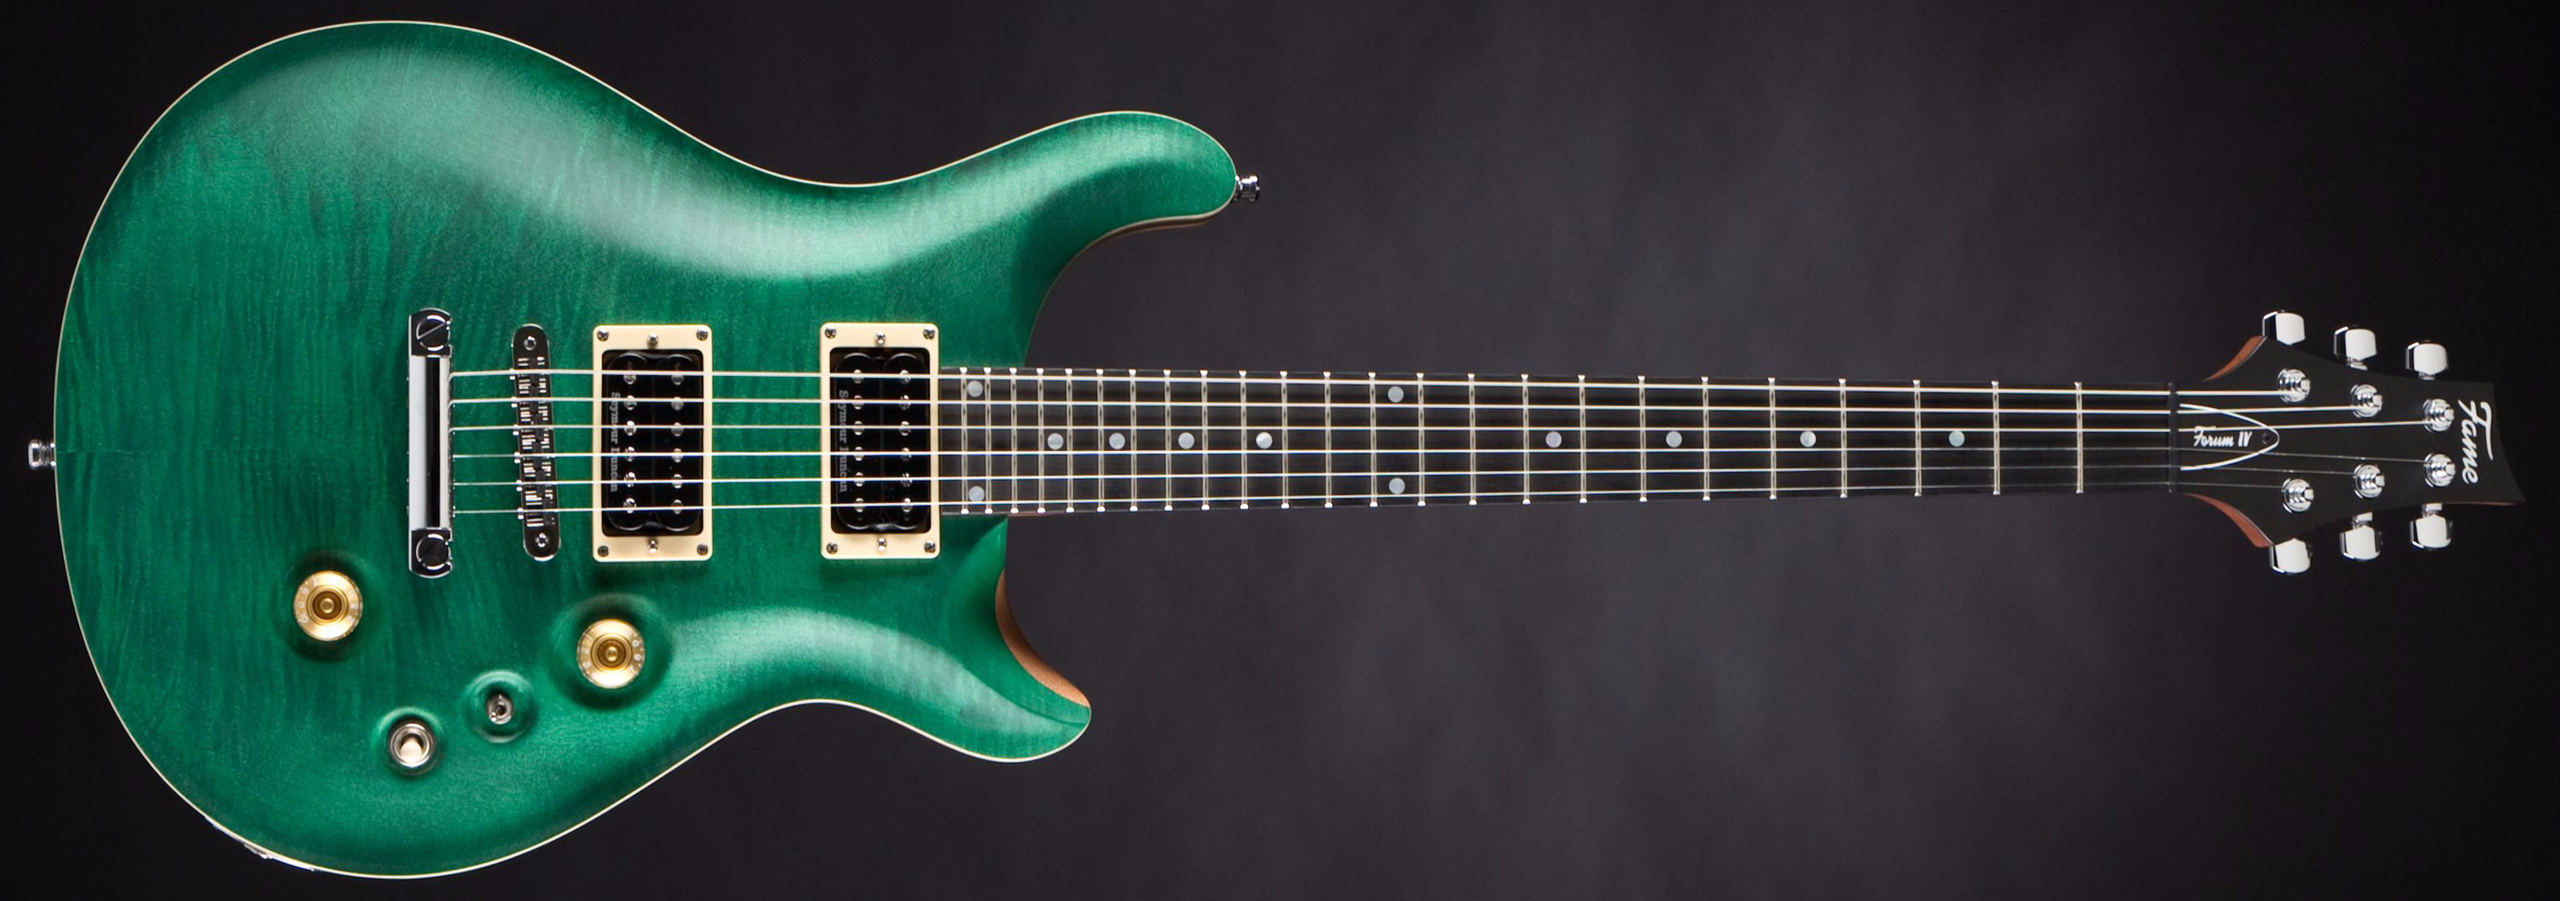 FAME Forum IV Modern Emerald Green Satin